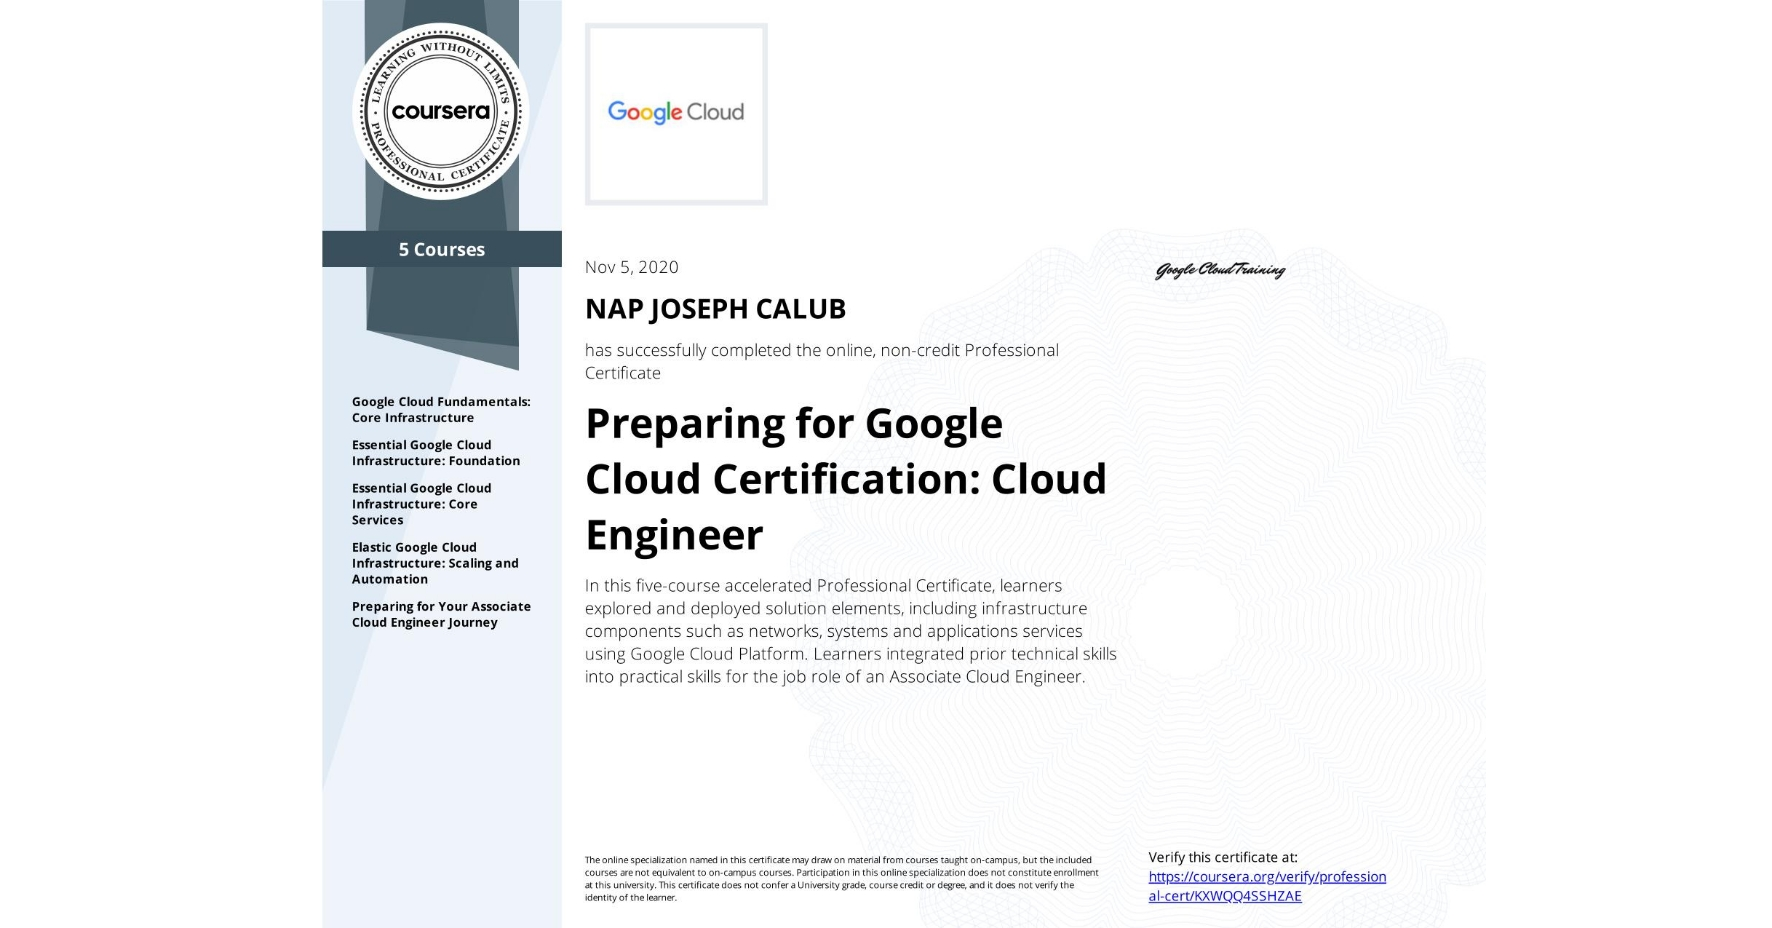 View certificate for NAP JOSEPH  CALUB, Preparing for Google Cloud Certification: Cloud Engineer, offered through Coursera. In this five-course accelerated Professional Certificate, learners explored and deployed solution elements, including infrastructure components such as networks, systems and applications services using Google Cloud Platform. Learners integrated prior technical skills into practical skills for the job role of an Associate Cloud Engineer.